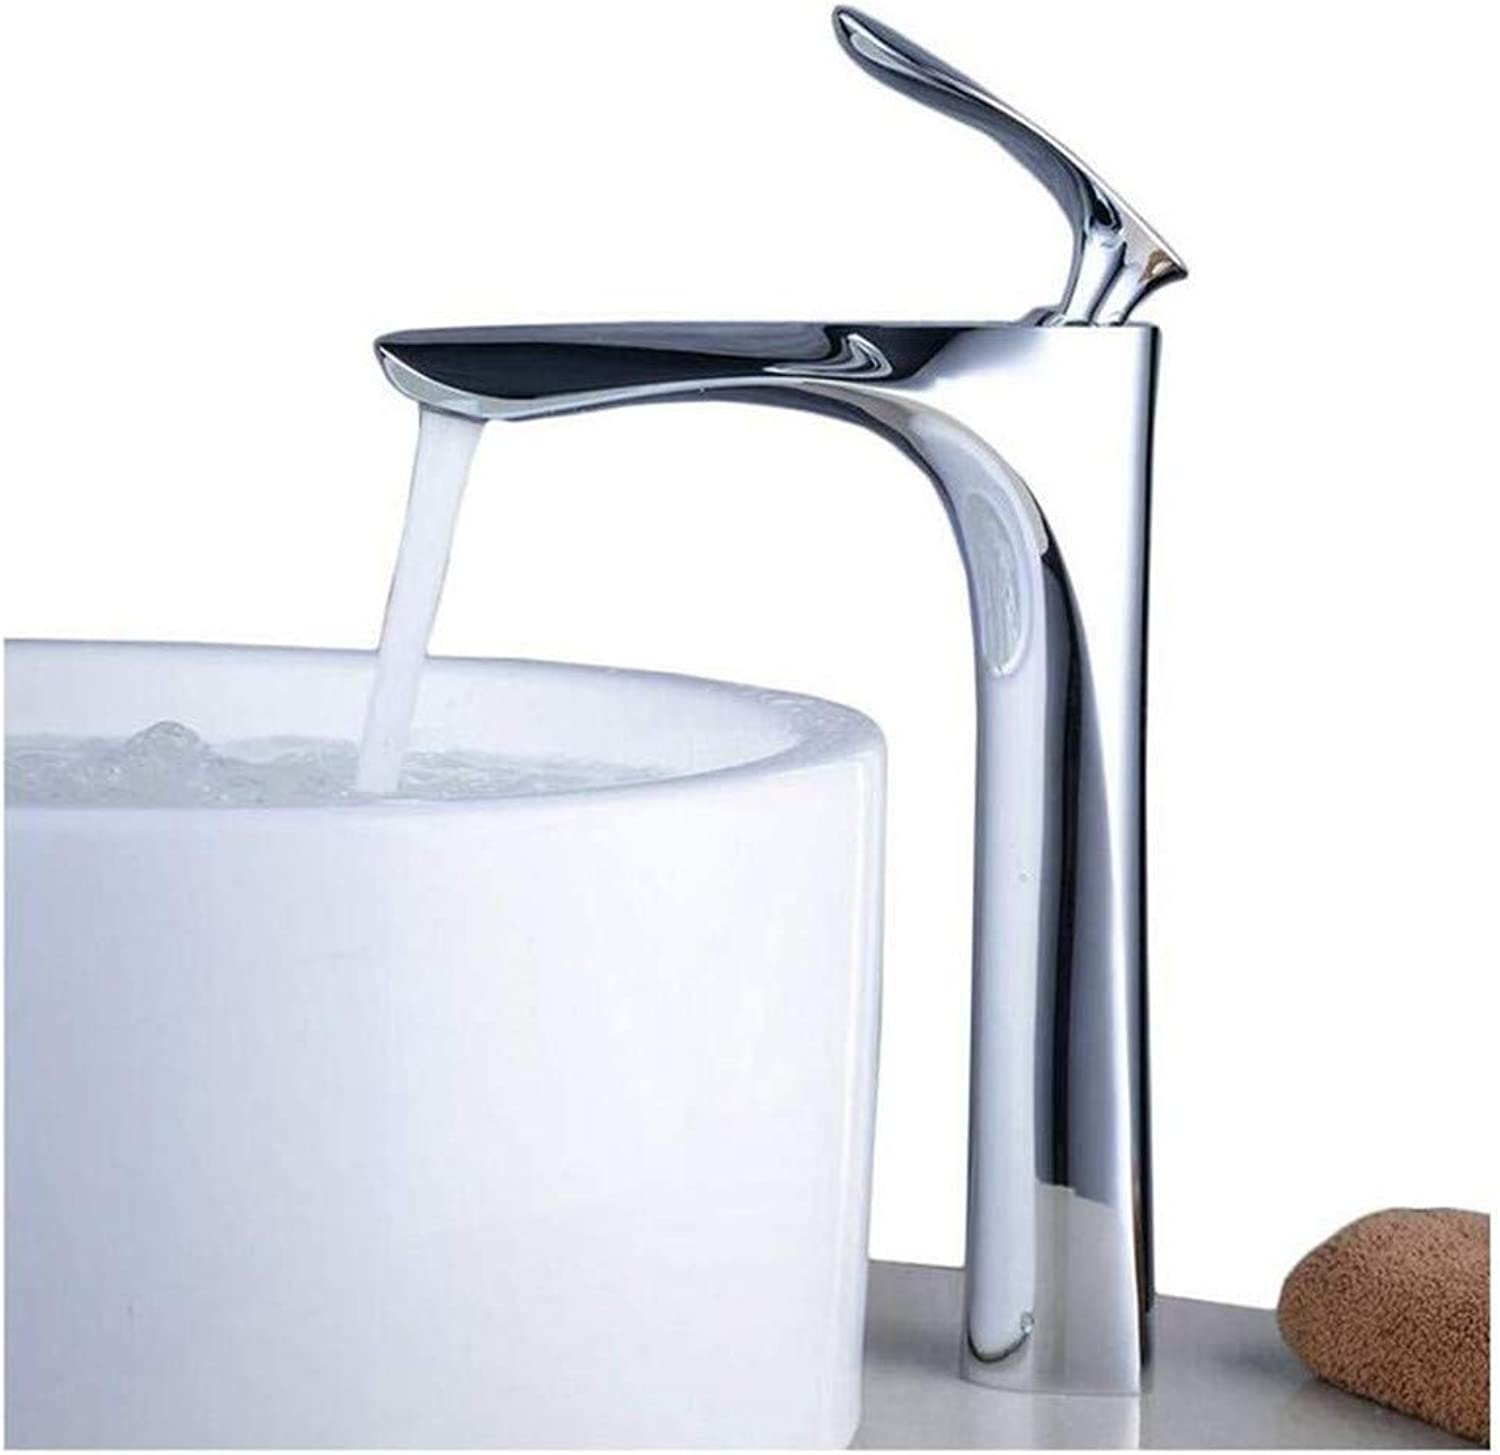 Faucetmodern Mixer Faucet Tall Counter Top Basin Mixer Tap Curved Bathroom Sink Tap